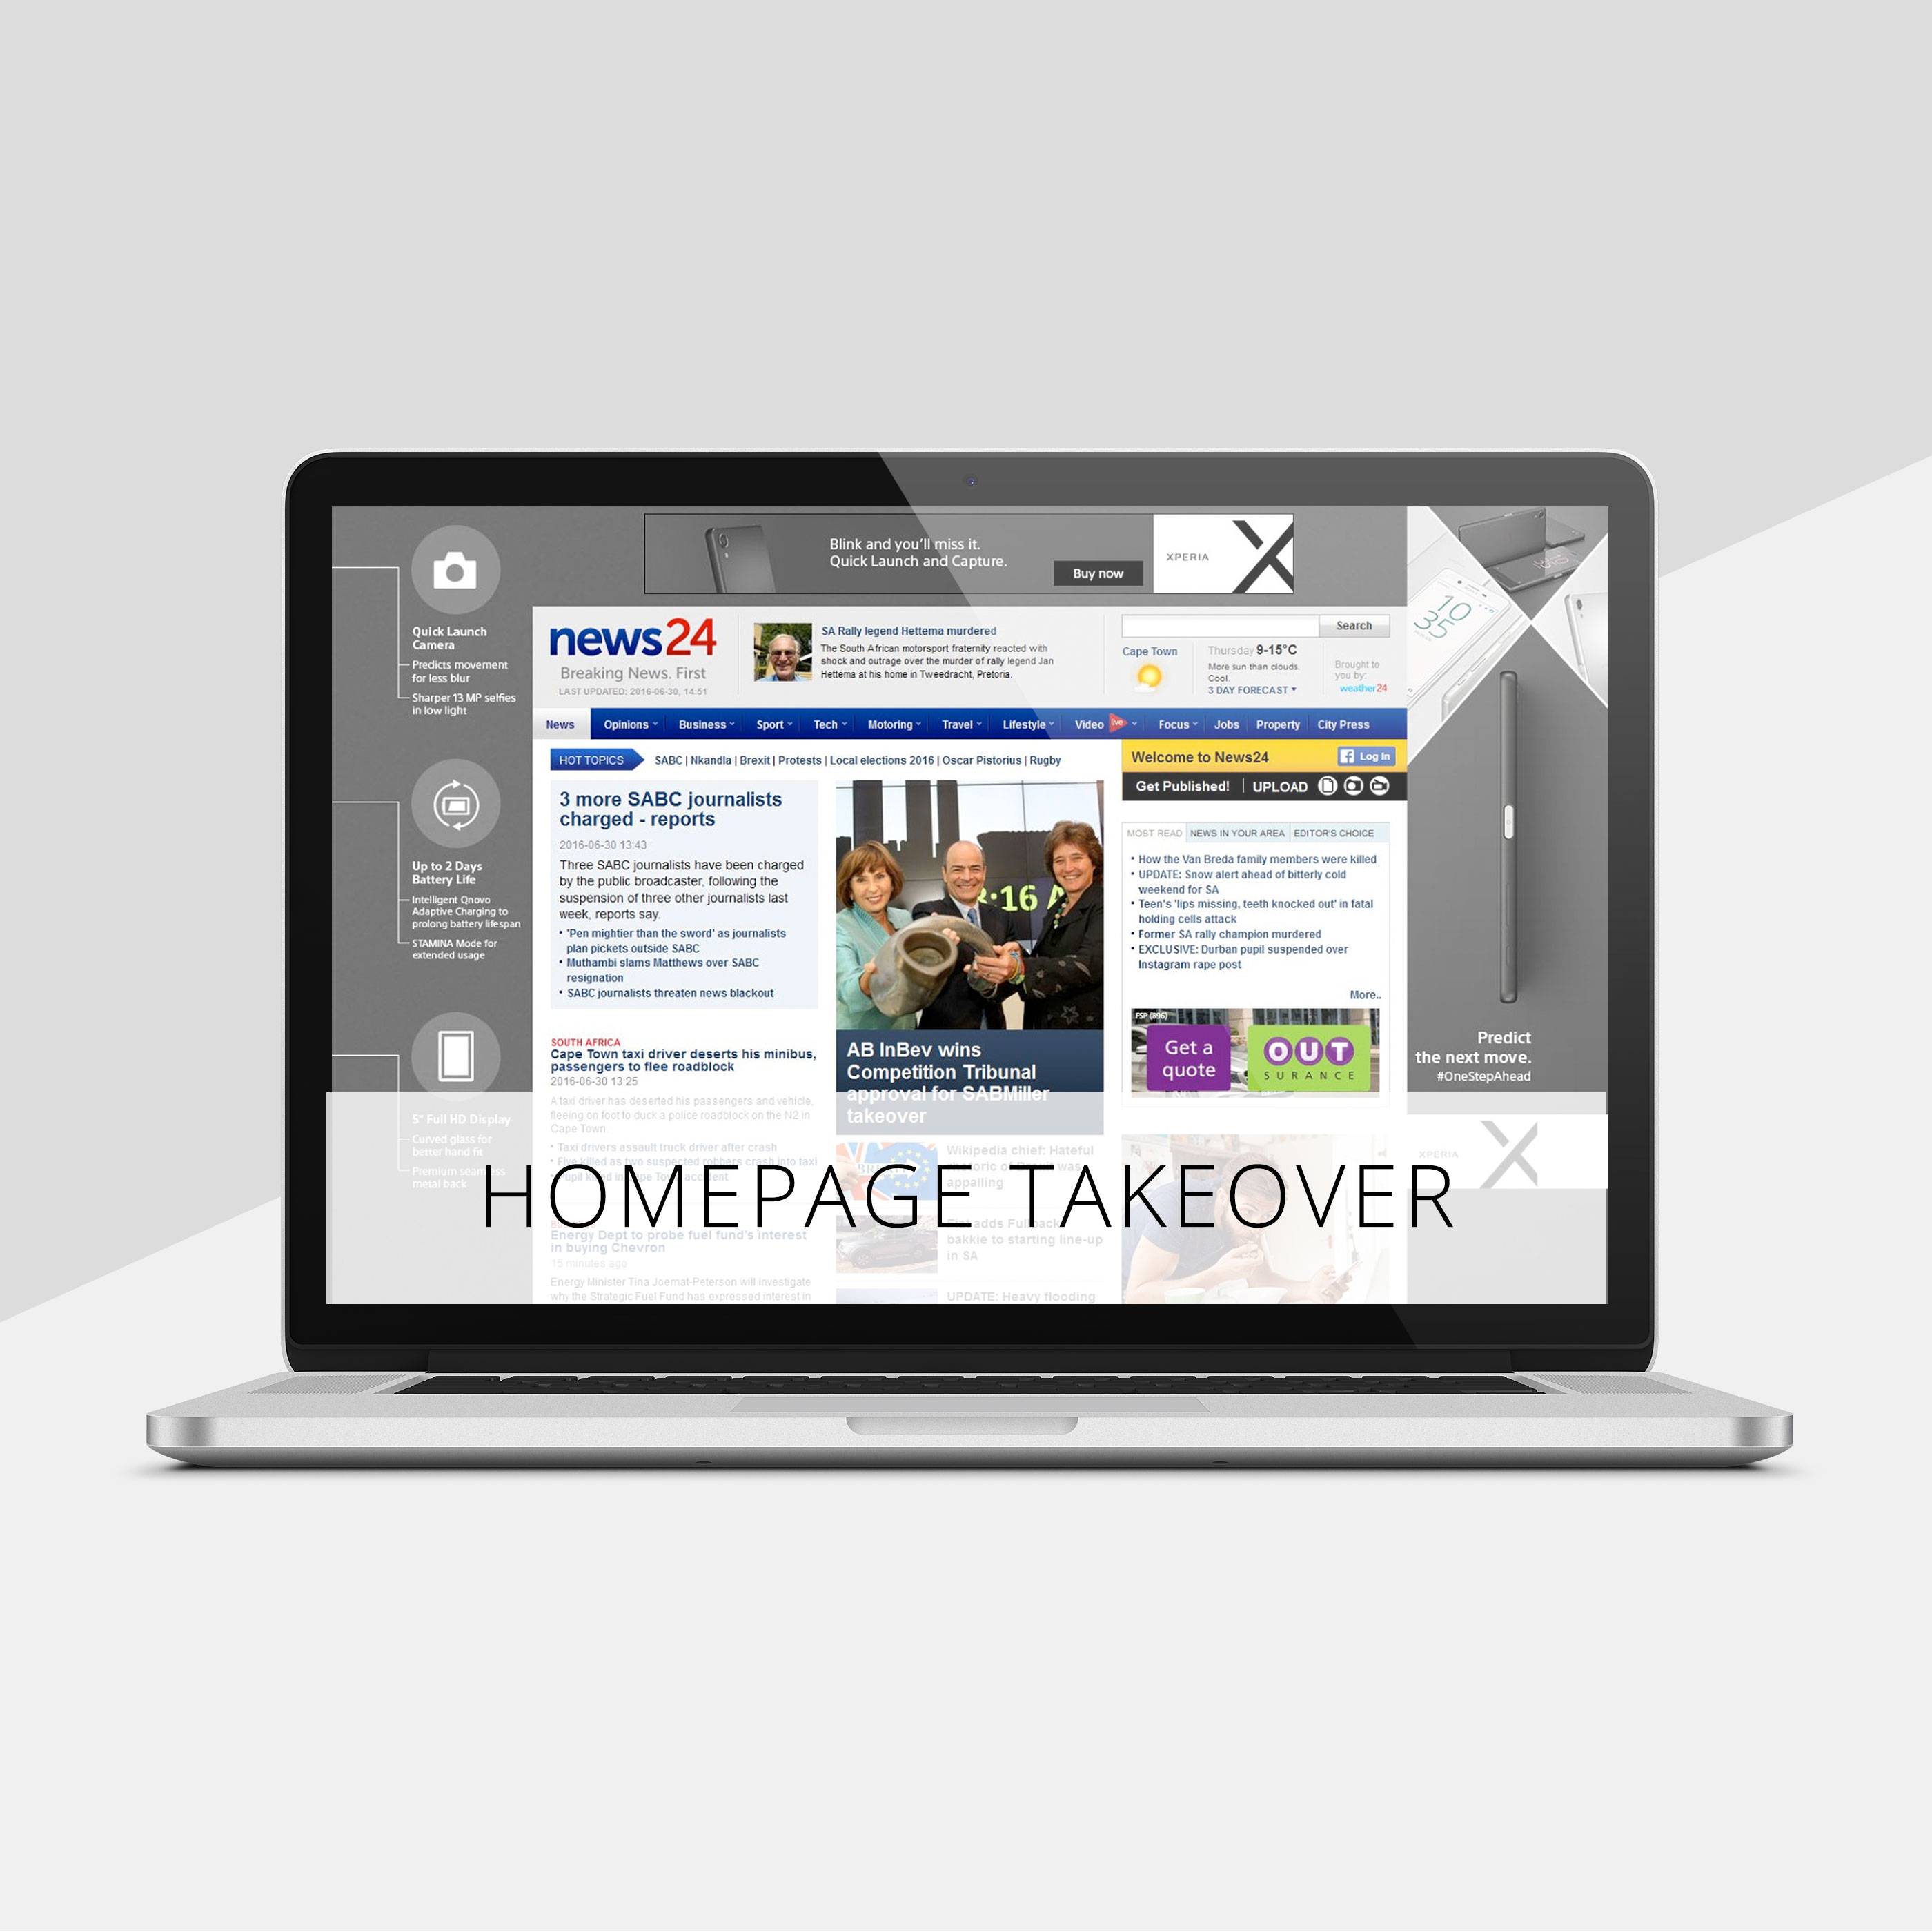 HOMEPAGE-TAKEOVER-THUMB